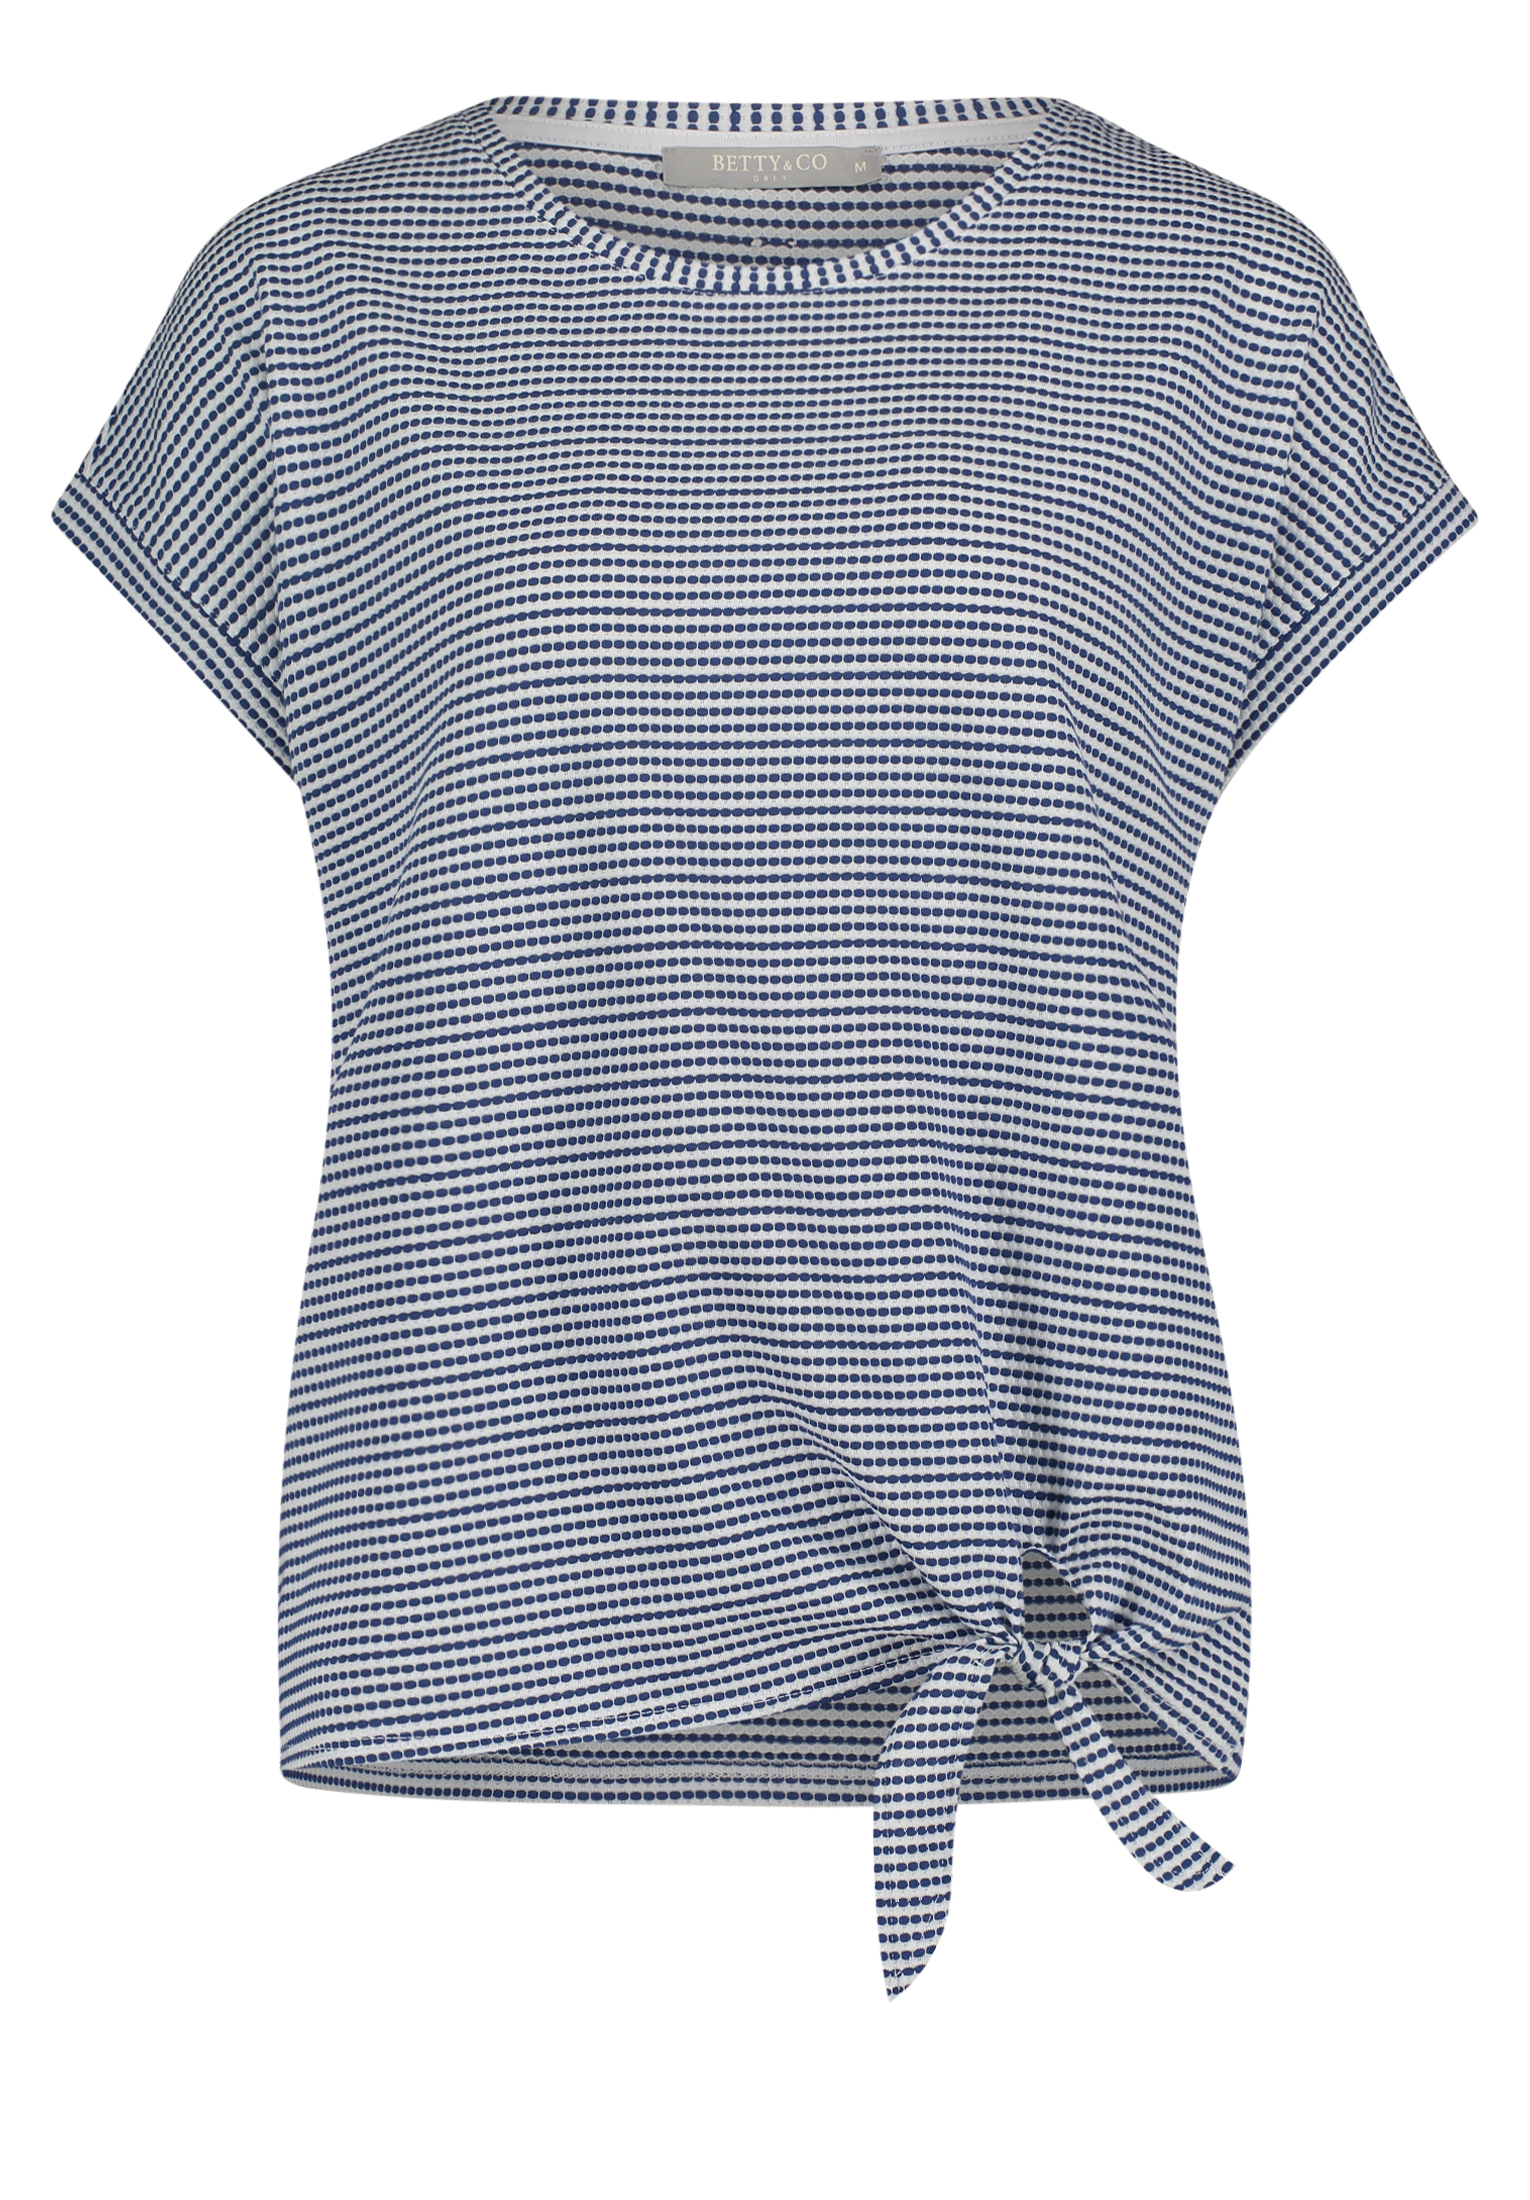 Betty & Co. kurzarm Shirt gemustert blau